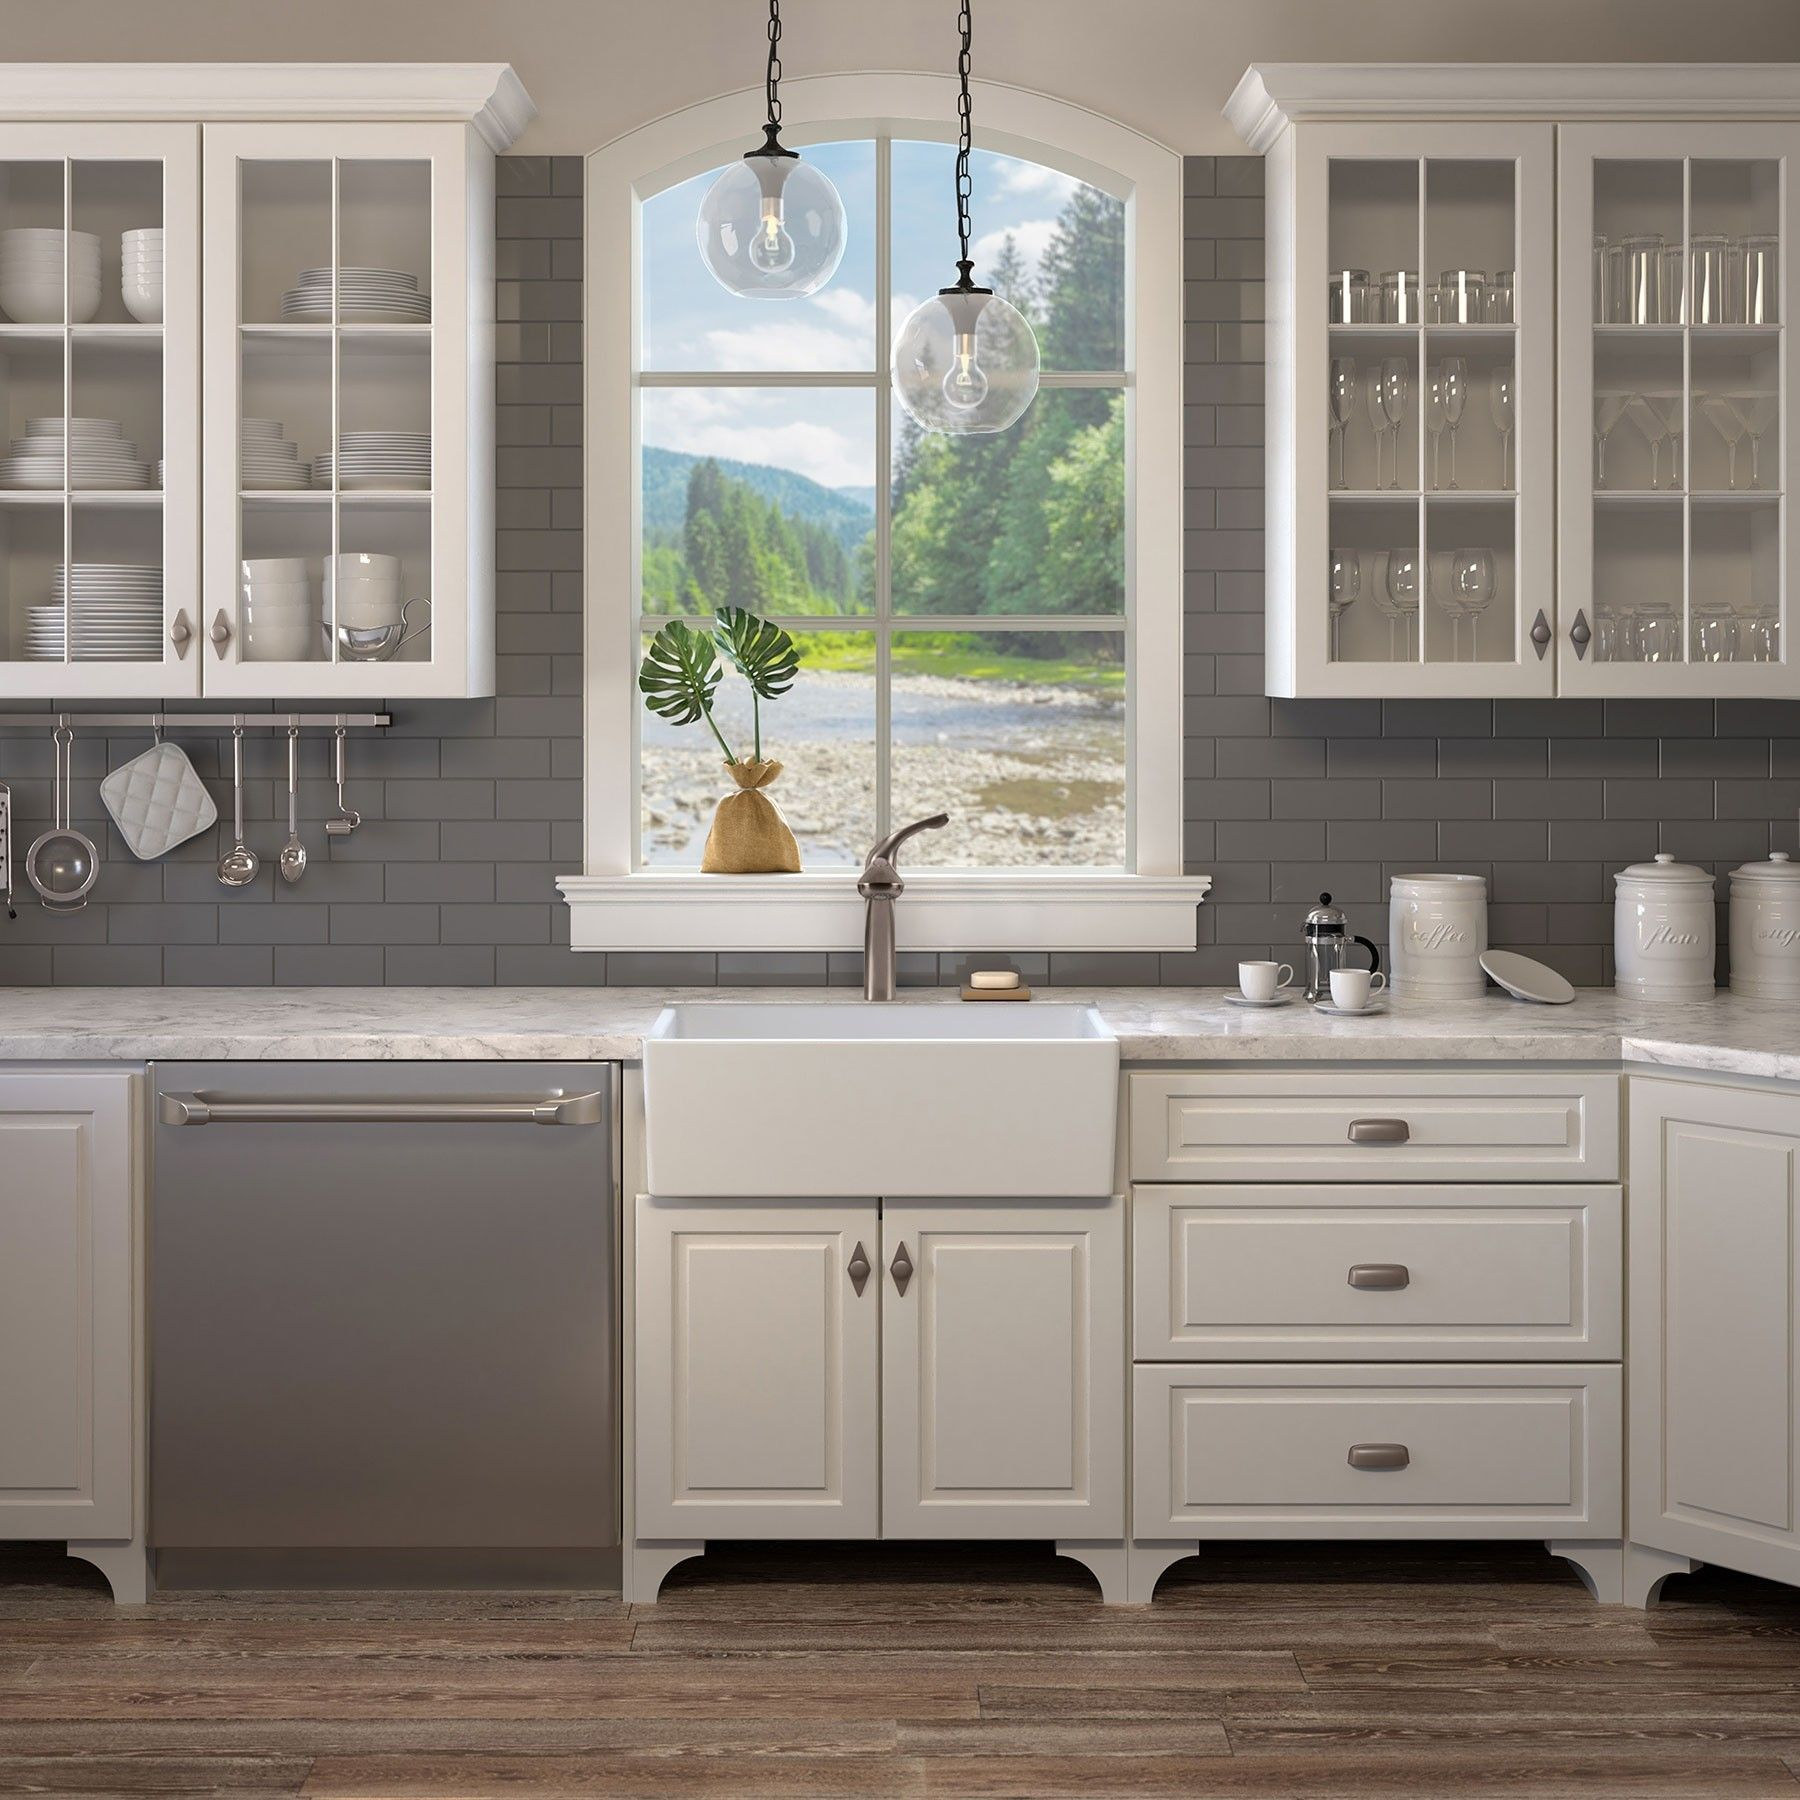 Surrey 30 Inch Fireclay Farmhouse Kitchen Sink Kitchen Apron Sink Remodeling Farmhouse Sink Kitchen Kitchen Style Kitchen Cabinets